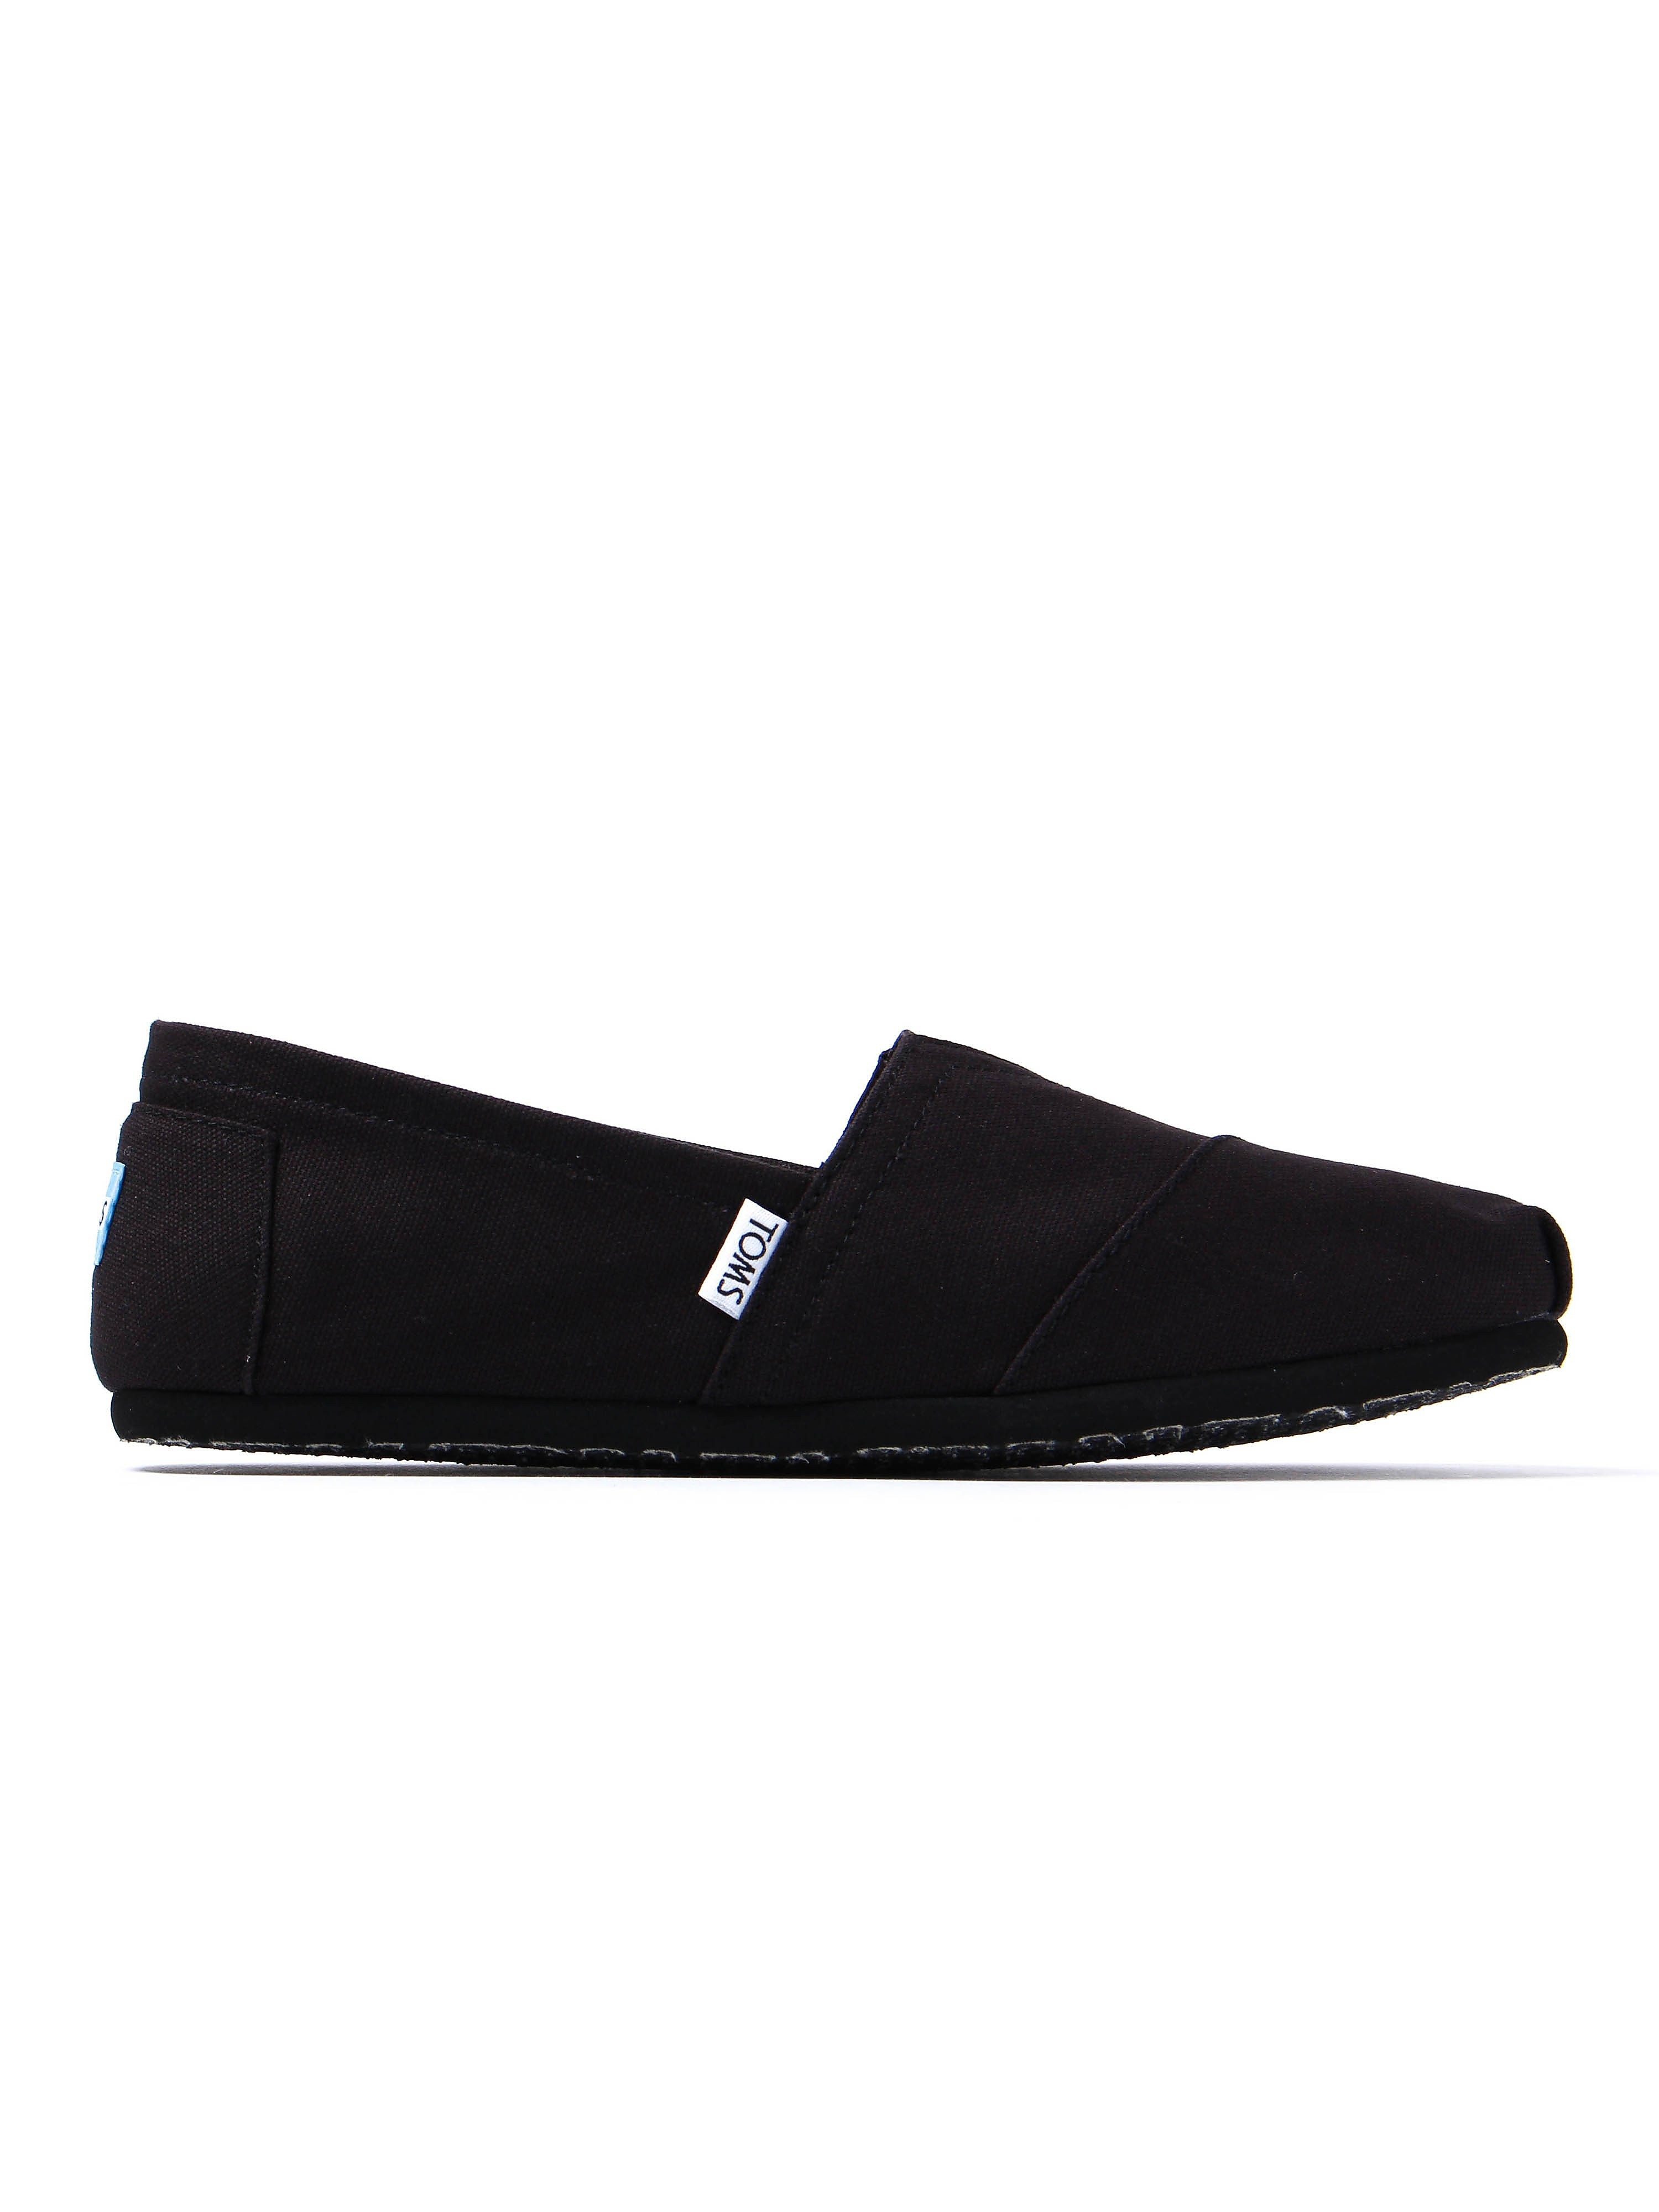 Toms Mens Classic Canvas Slip-On Shoes - All Black